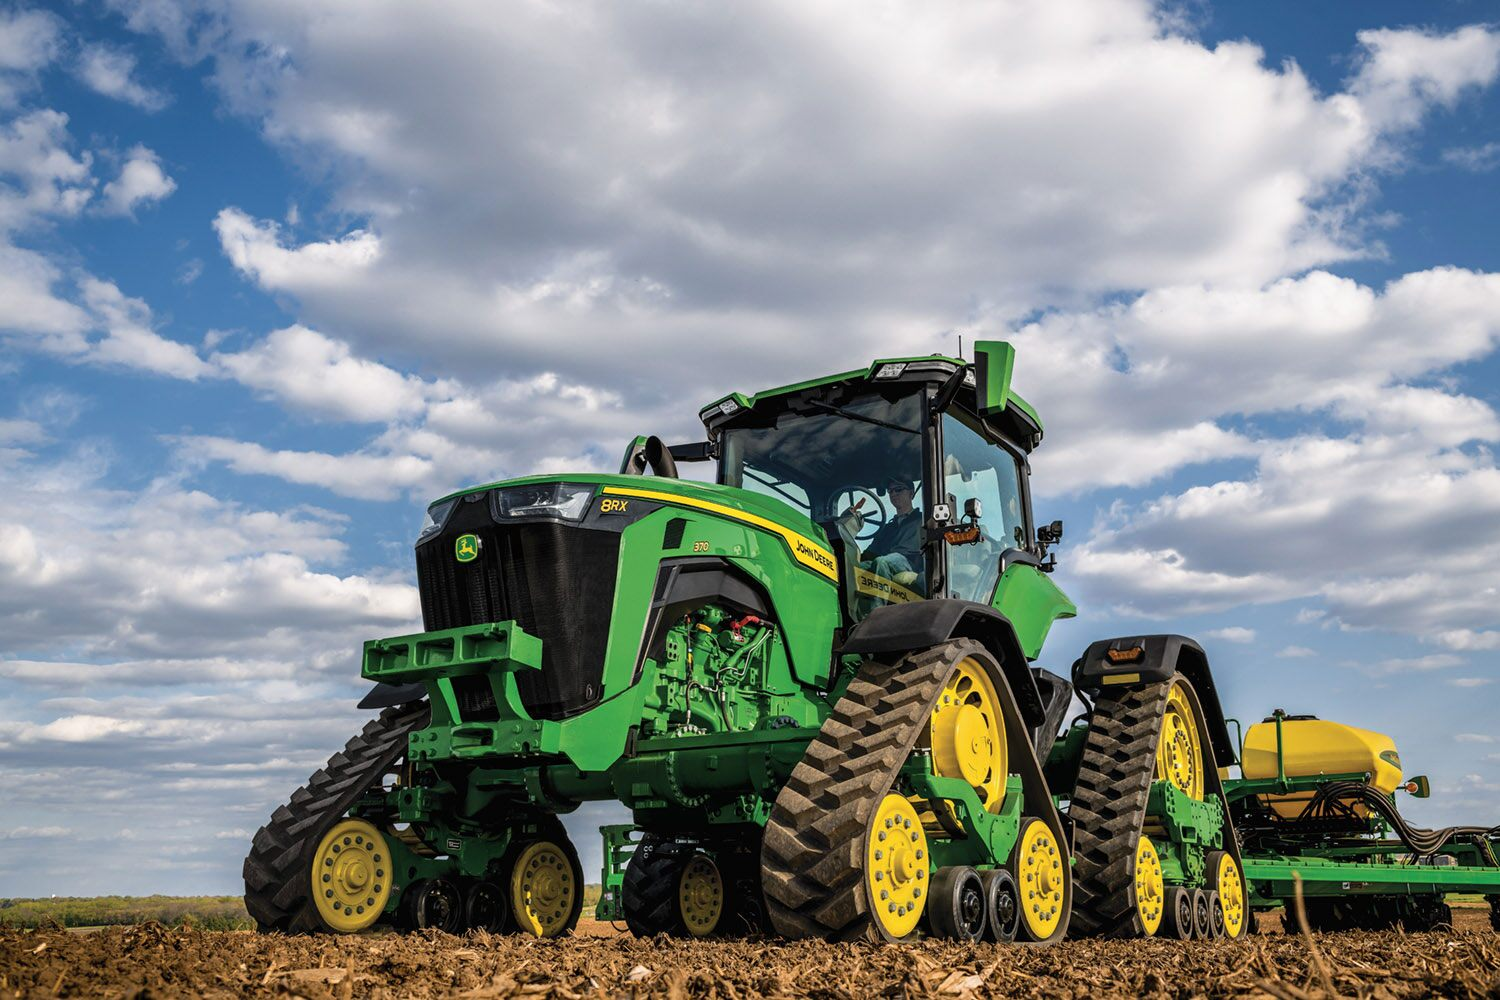 The 8RX 370 is available with a John Deere e23 PowerShift or Infinitely Variable Transmission (IVT)